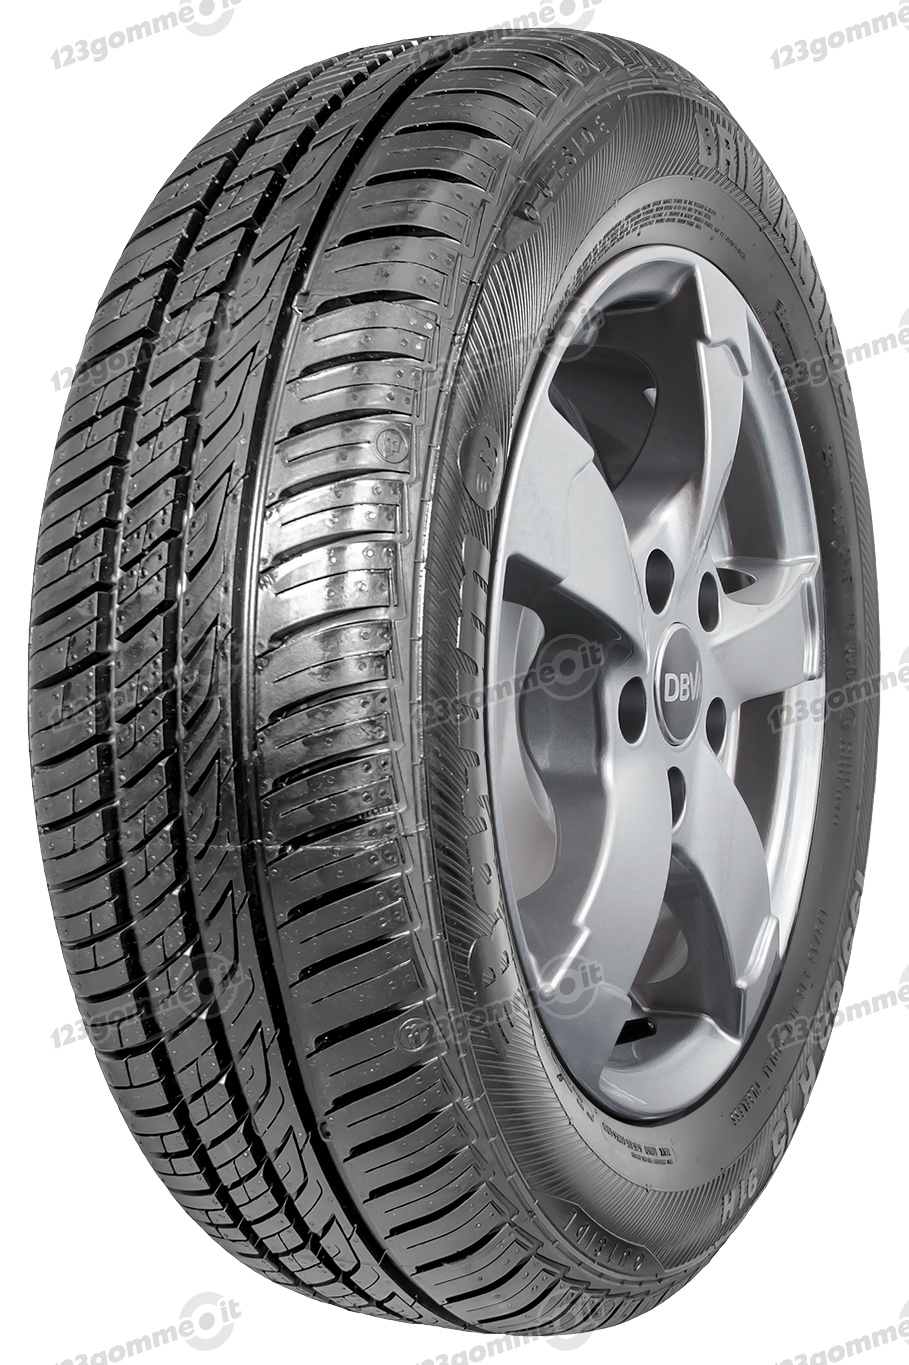 165/70 R13 83T Brillantis 2 XL  Brillantis 2 XL